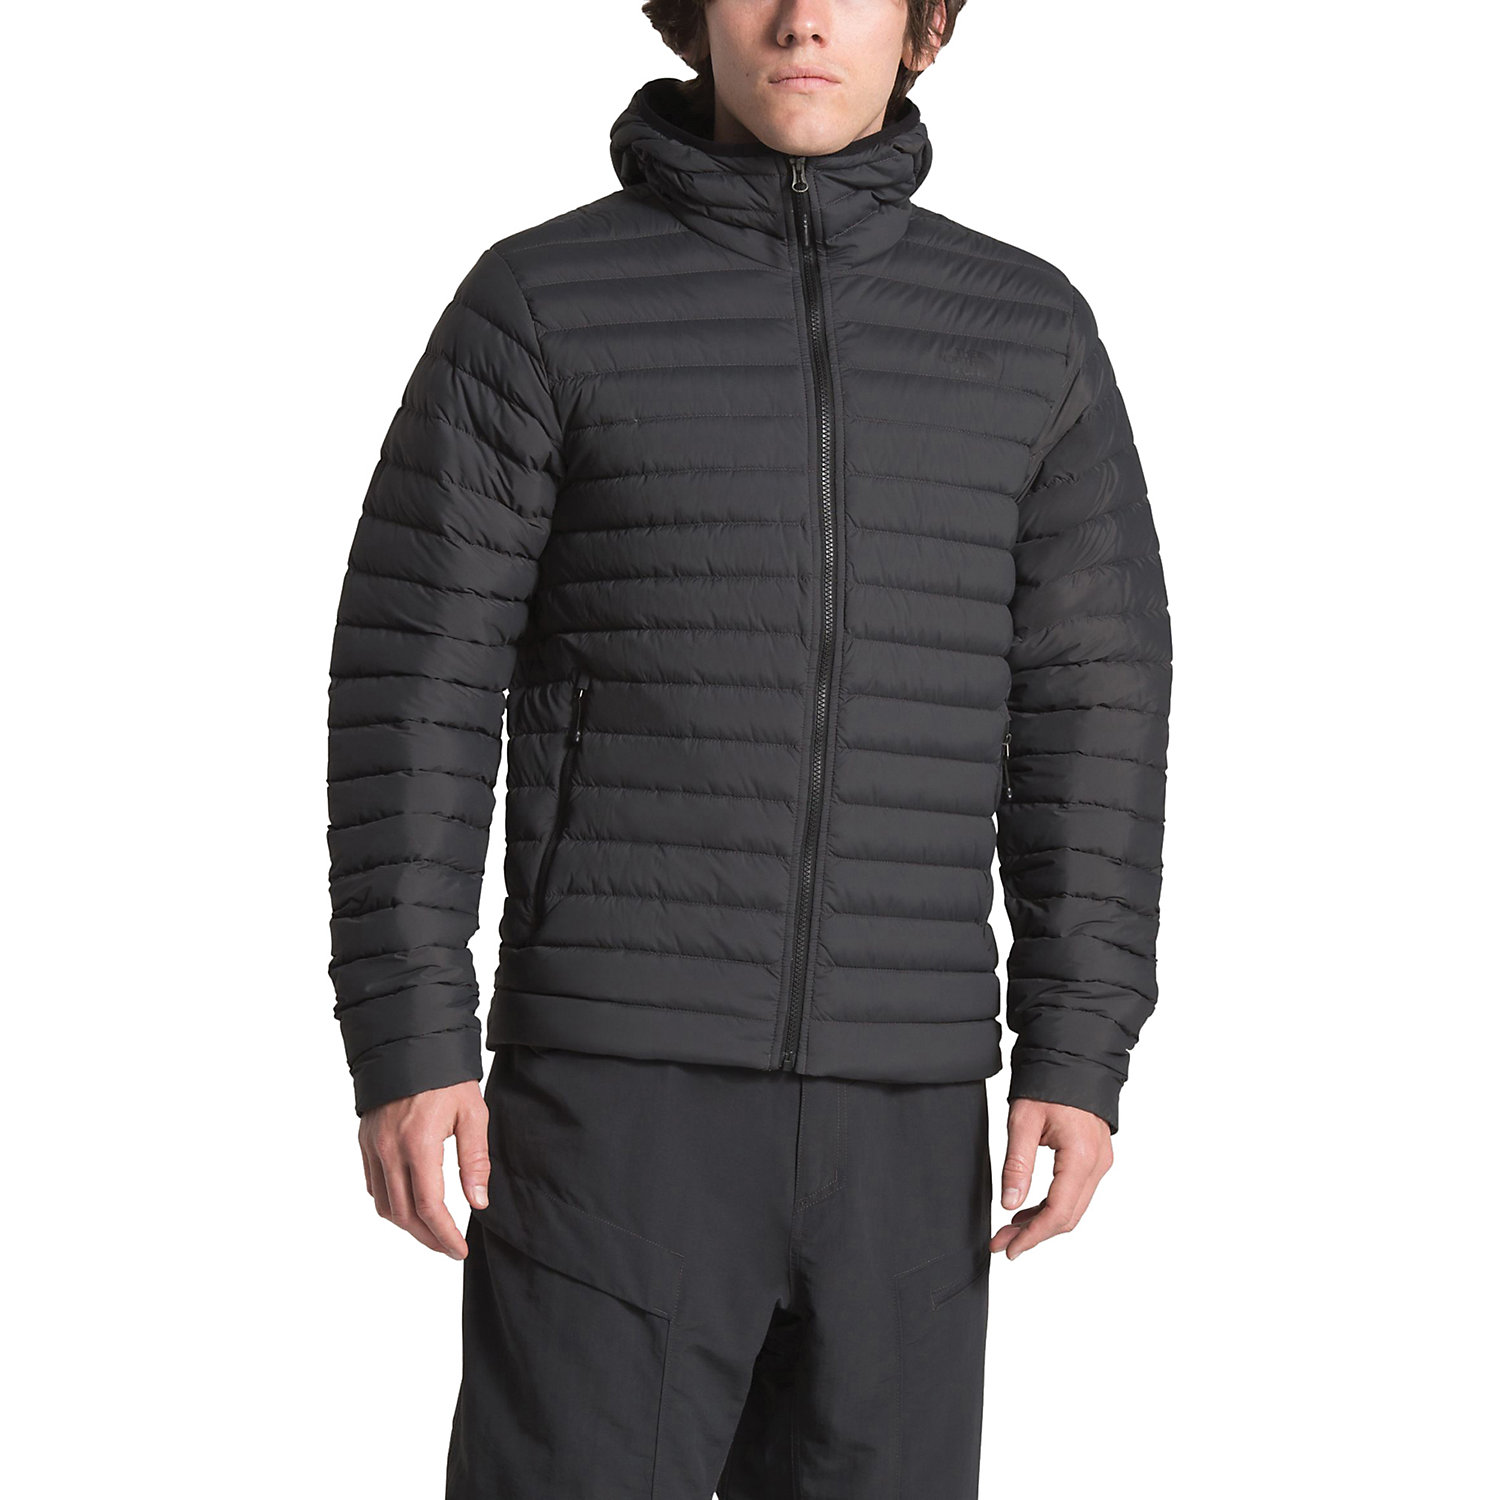 0cd08348255 The North Face Men's Stretch Down Hoodie - Moosejaw